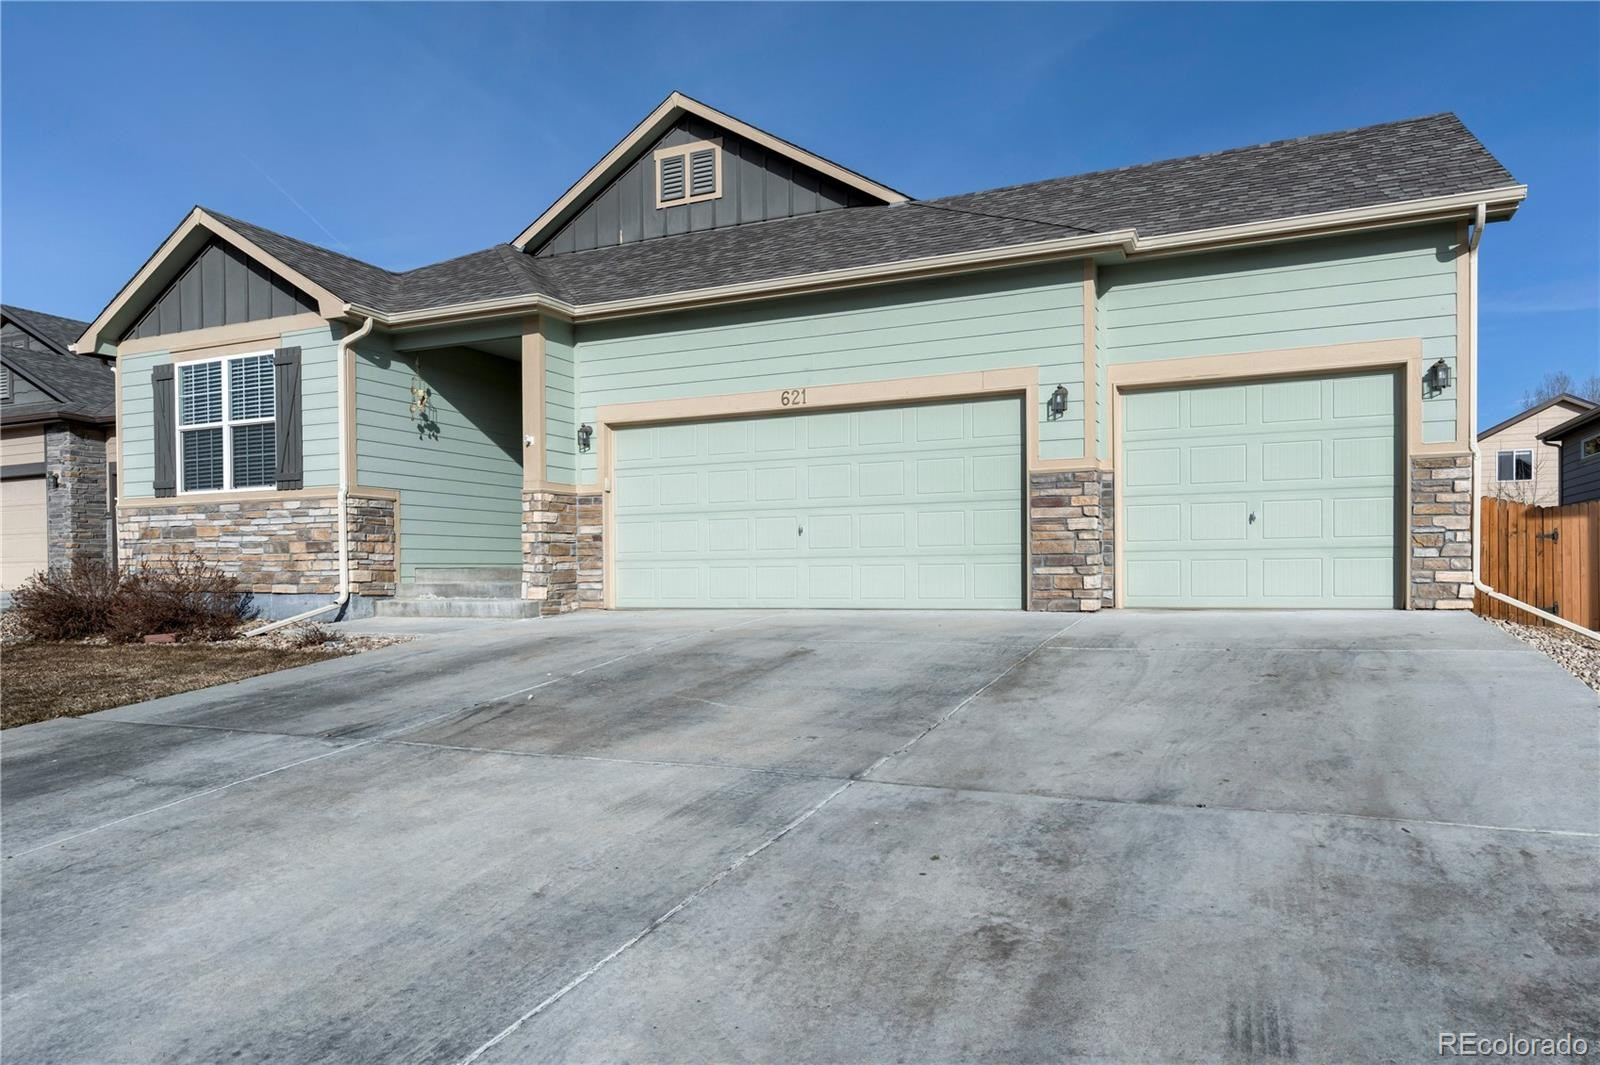 MLS# 8936788 - 2 - 621 Dee Road, Johnstown, CO 80534